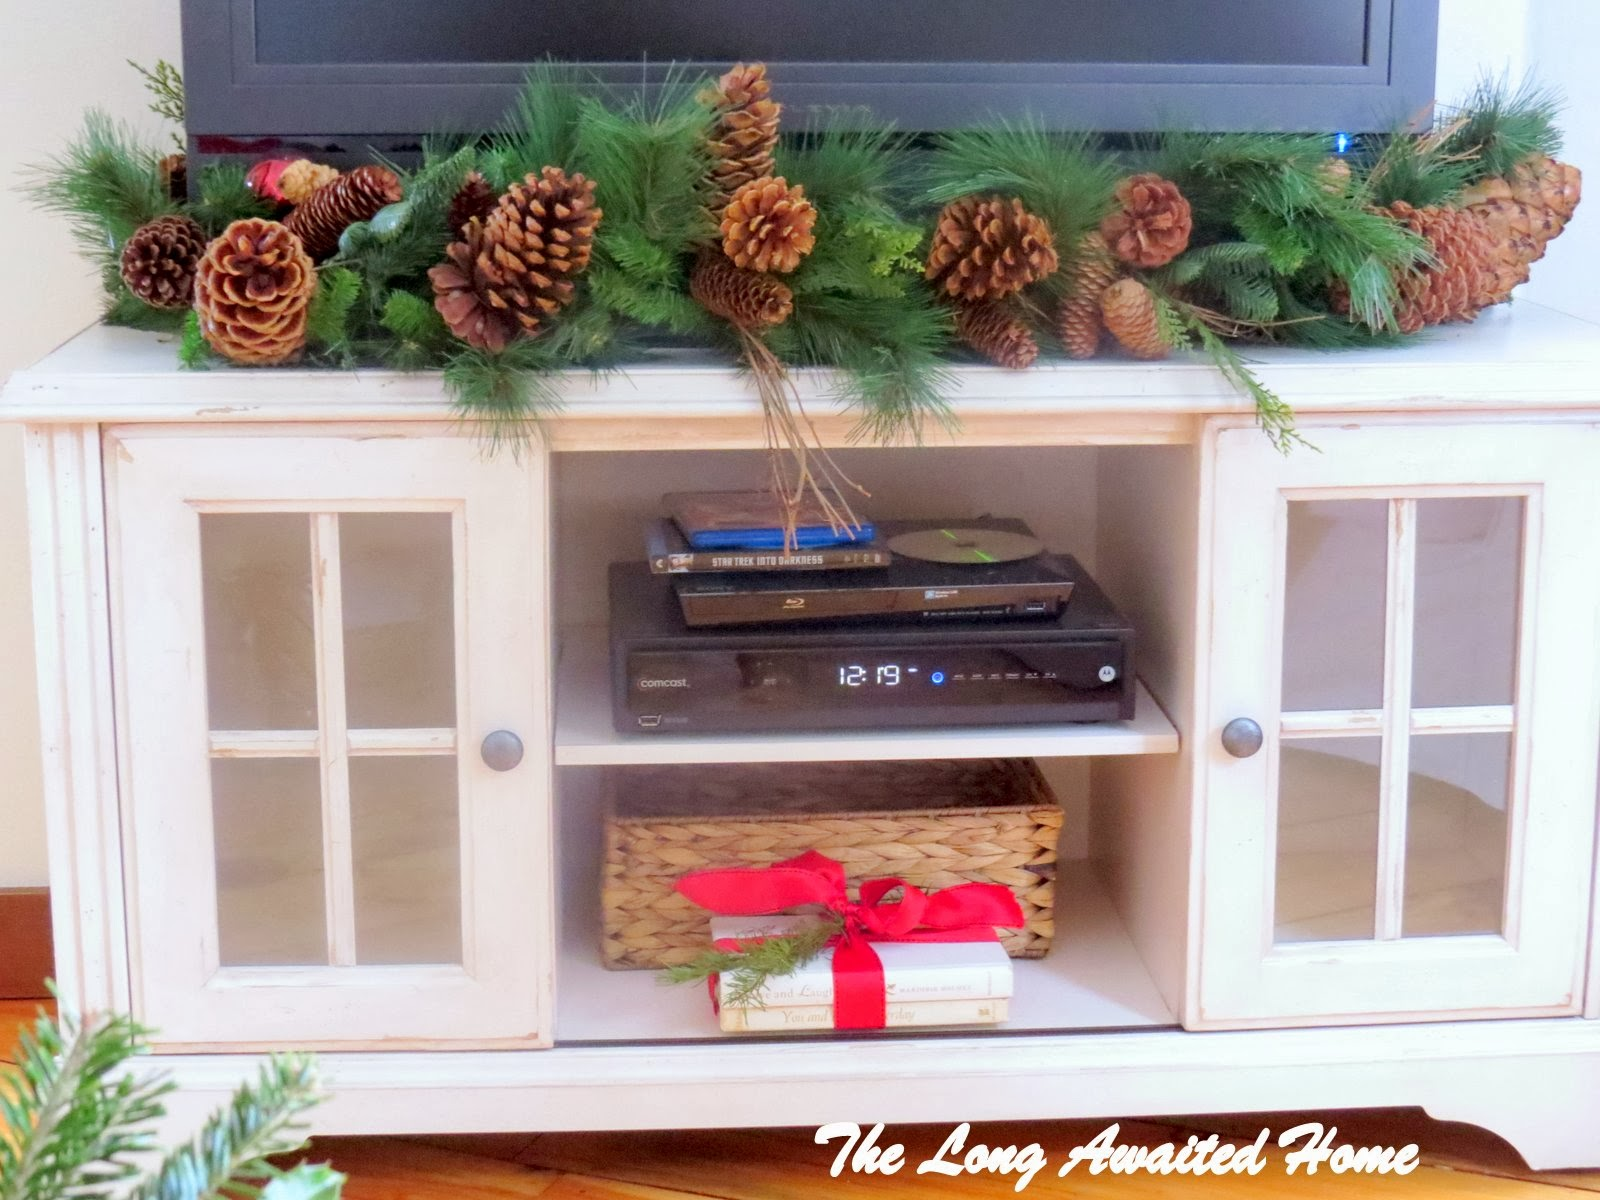 TV Stand   Homegoods. The Long Awaited Home  Christmas in the Family Room